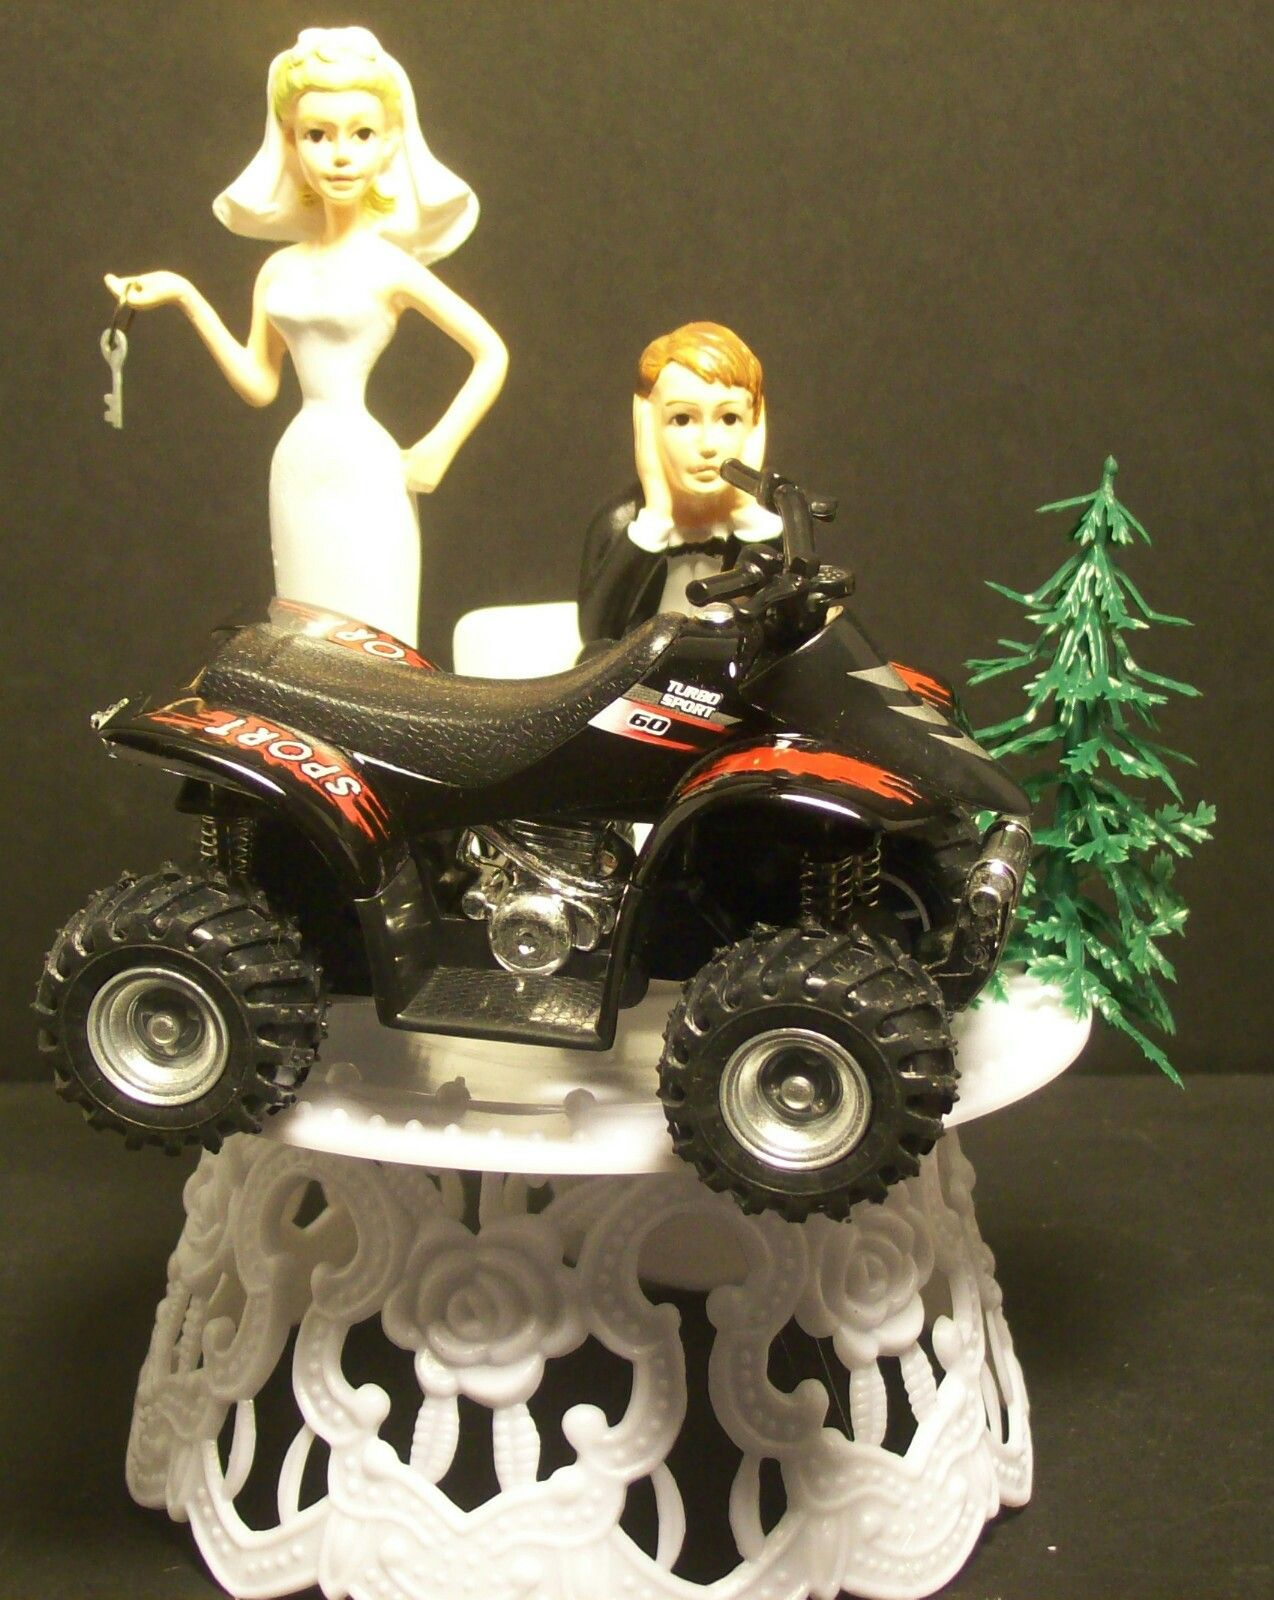 Sporty Atv Wedding Cake Topper Should Ve Had This For Our Cake Topper Lol Wedding Cake Toppers Cute Date Ideas Wedding Cakes